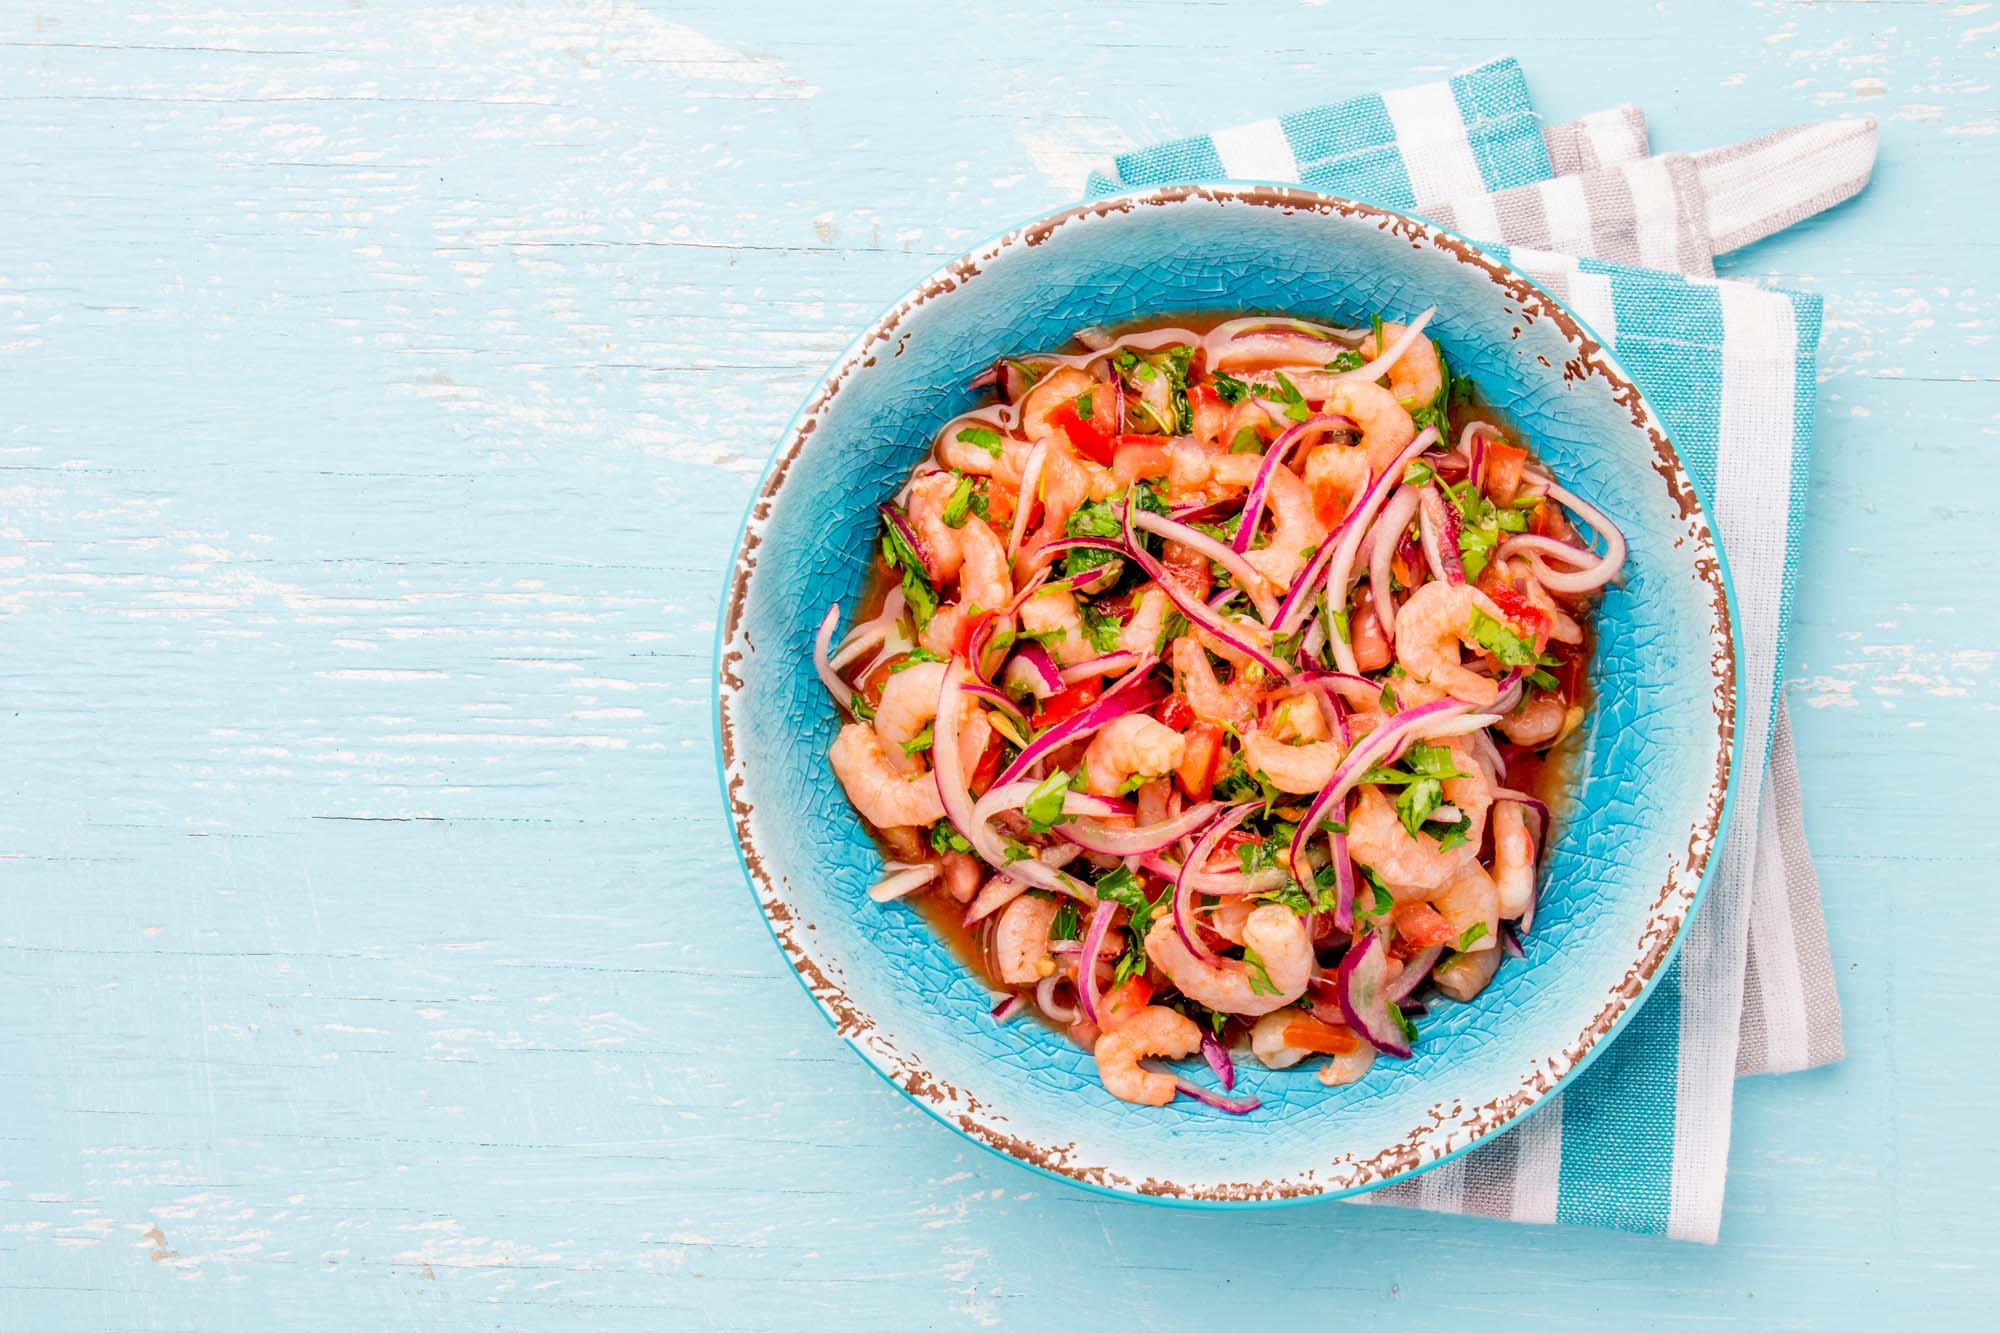 Bloody ceviche